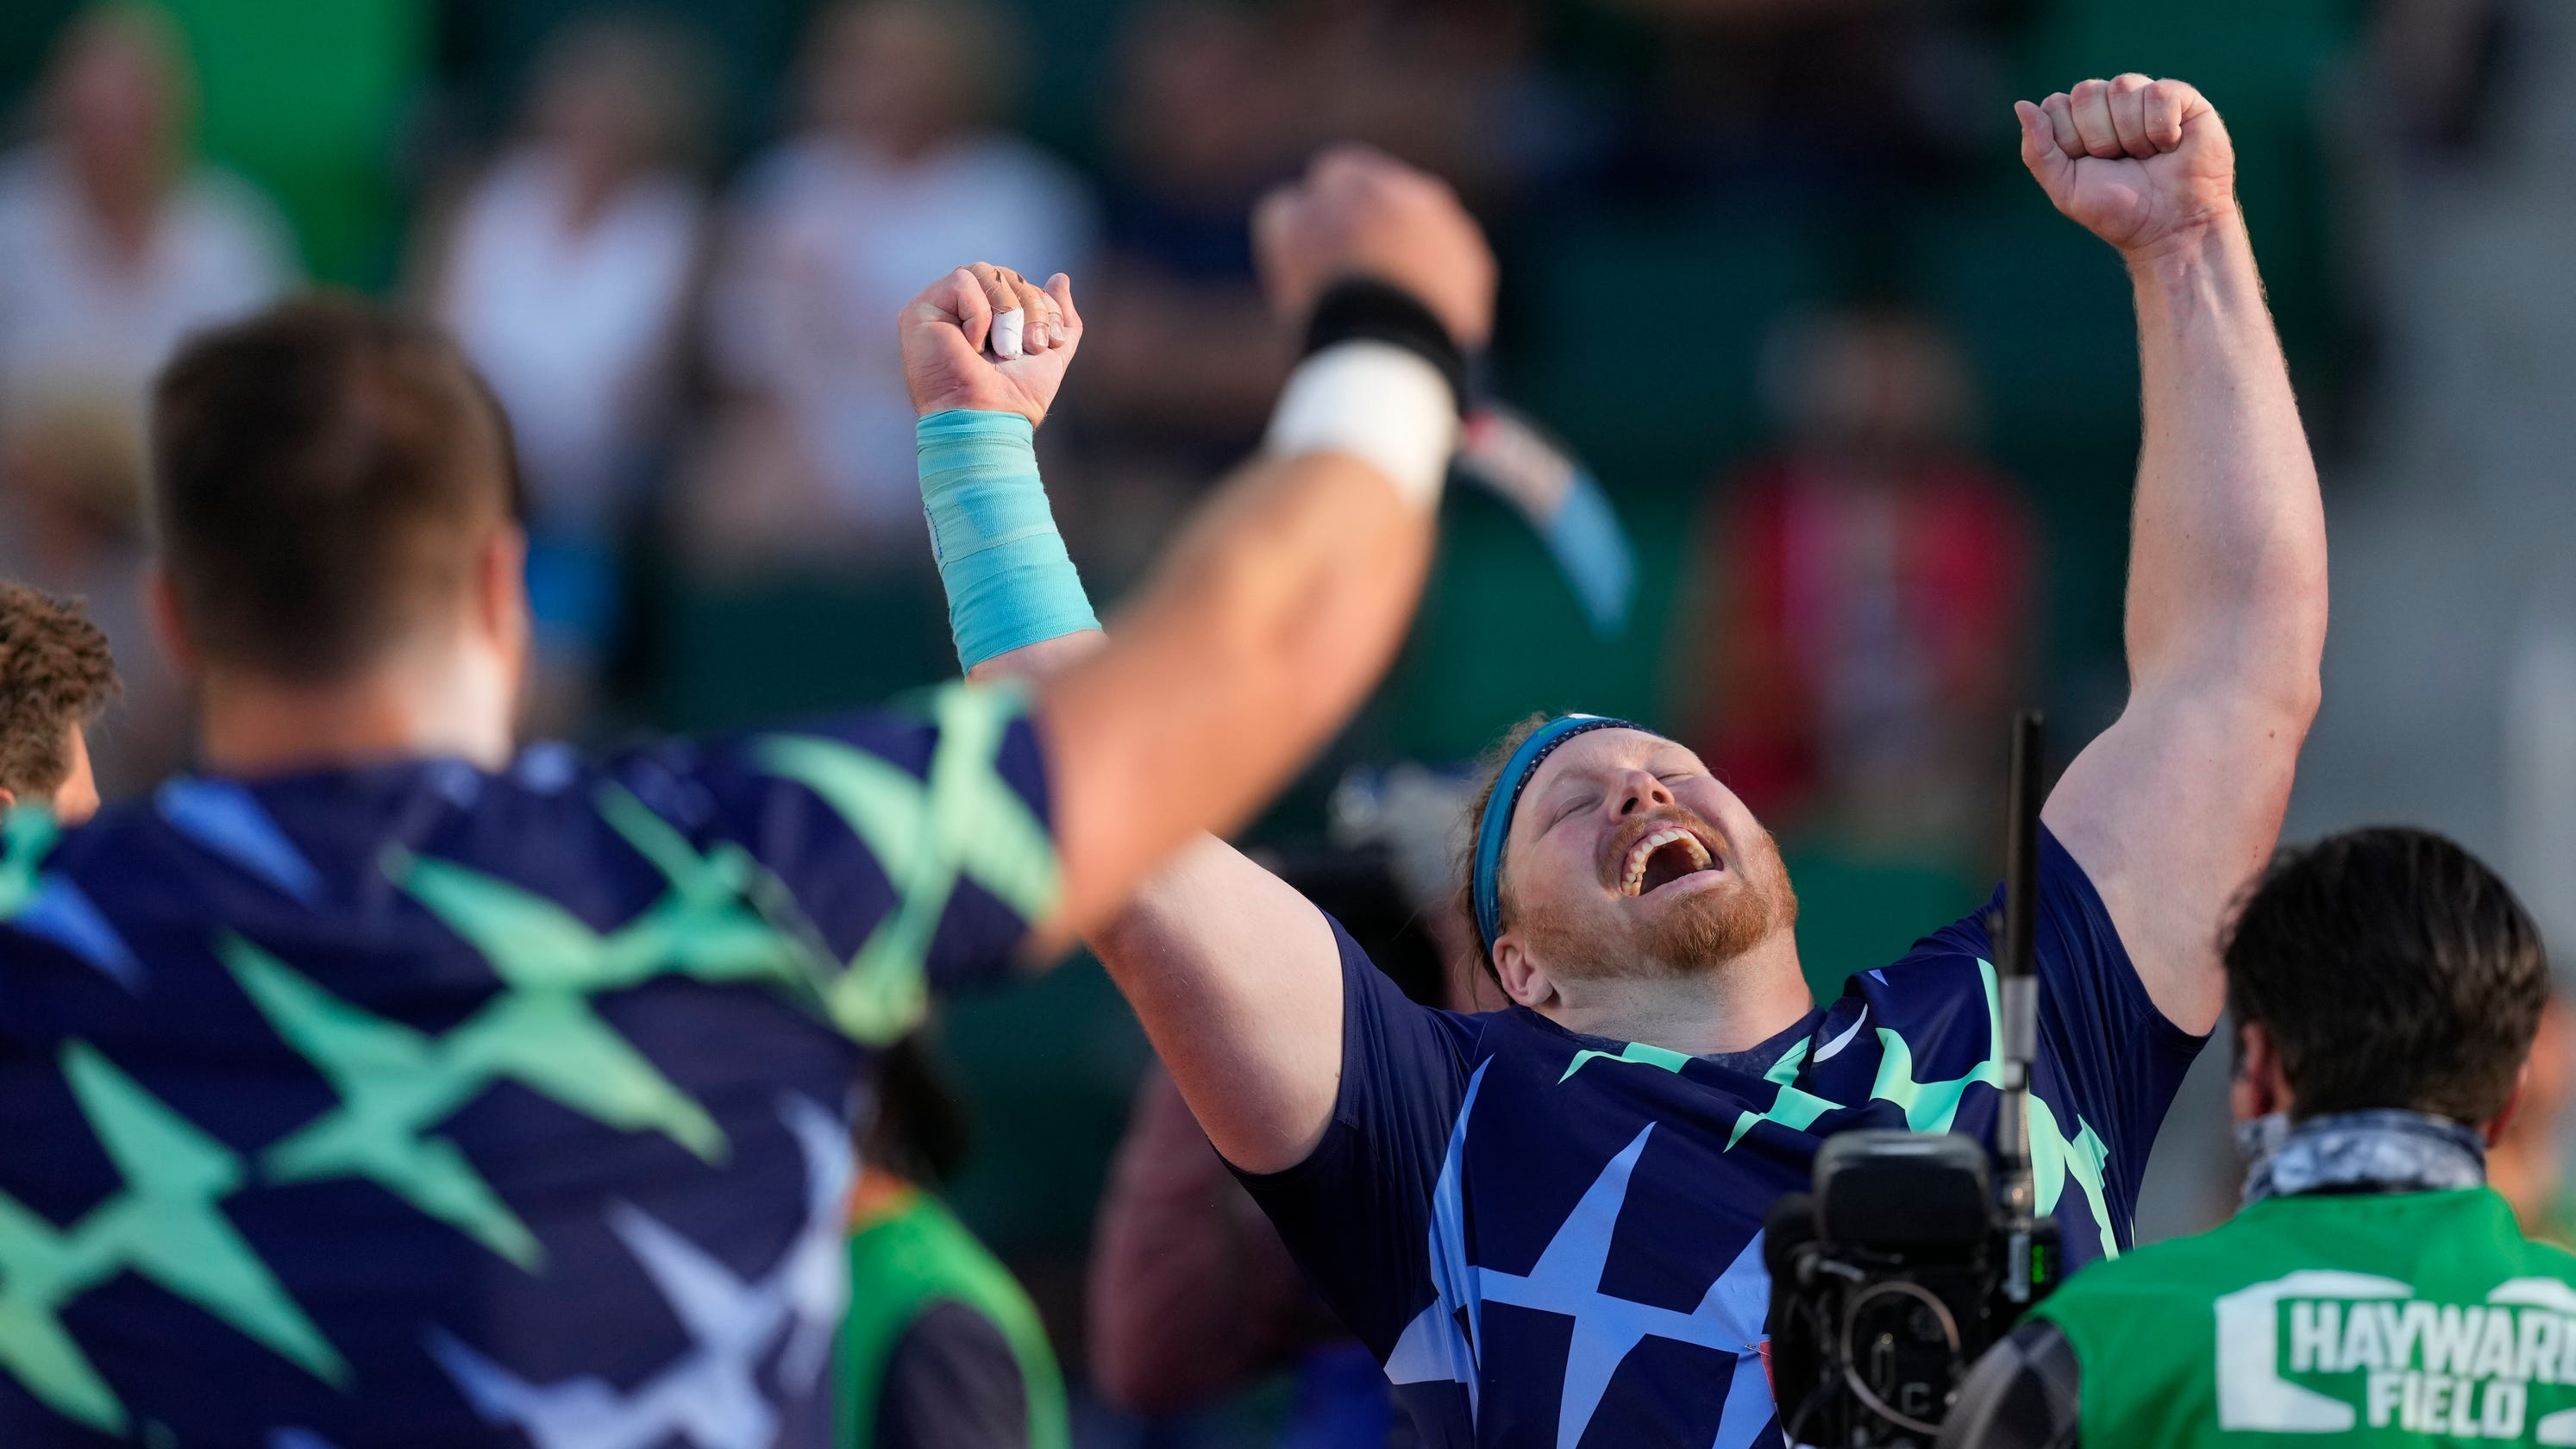 Ryan Crouser shatters world record in men's shot put at Olympic trials